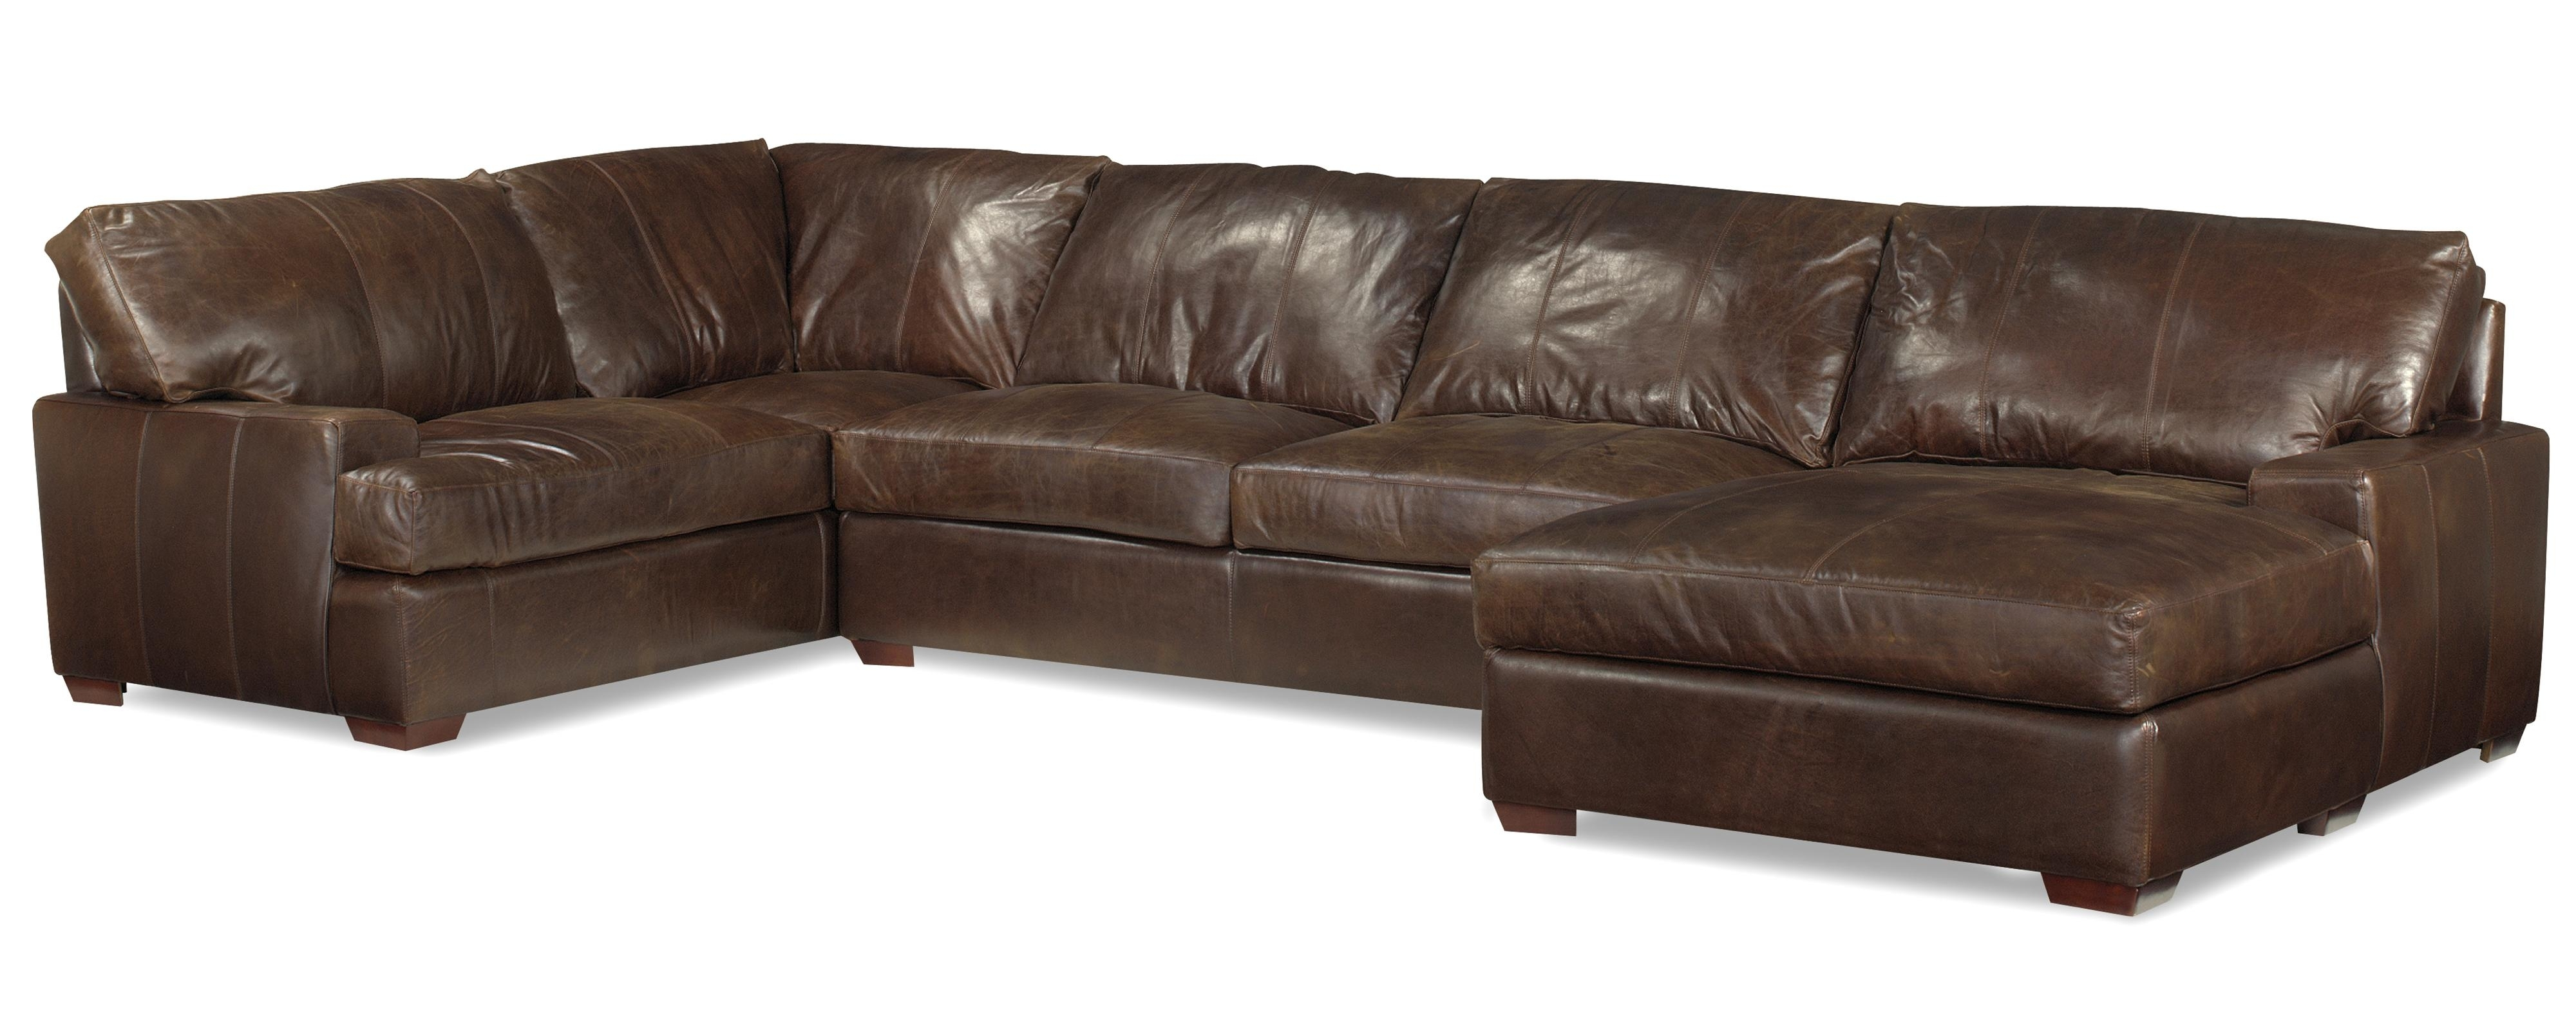 Usa Premium Leather 3635 Track Arm Sofa Chaise Sectional W/ Block With Sectional Sofas With Chaise (View 15 of 15)